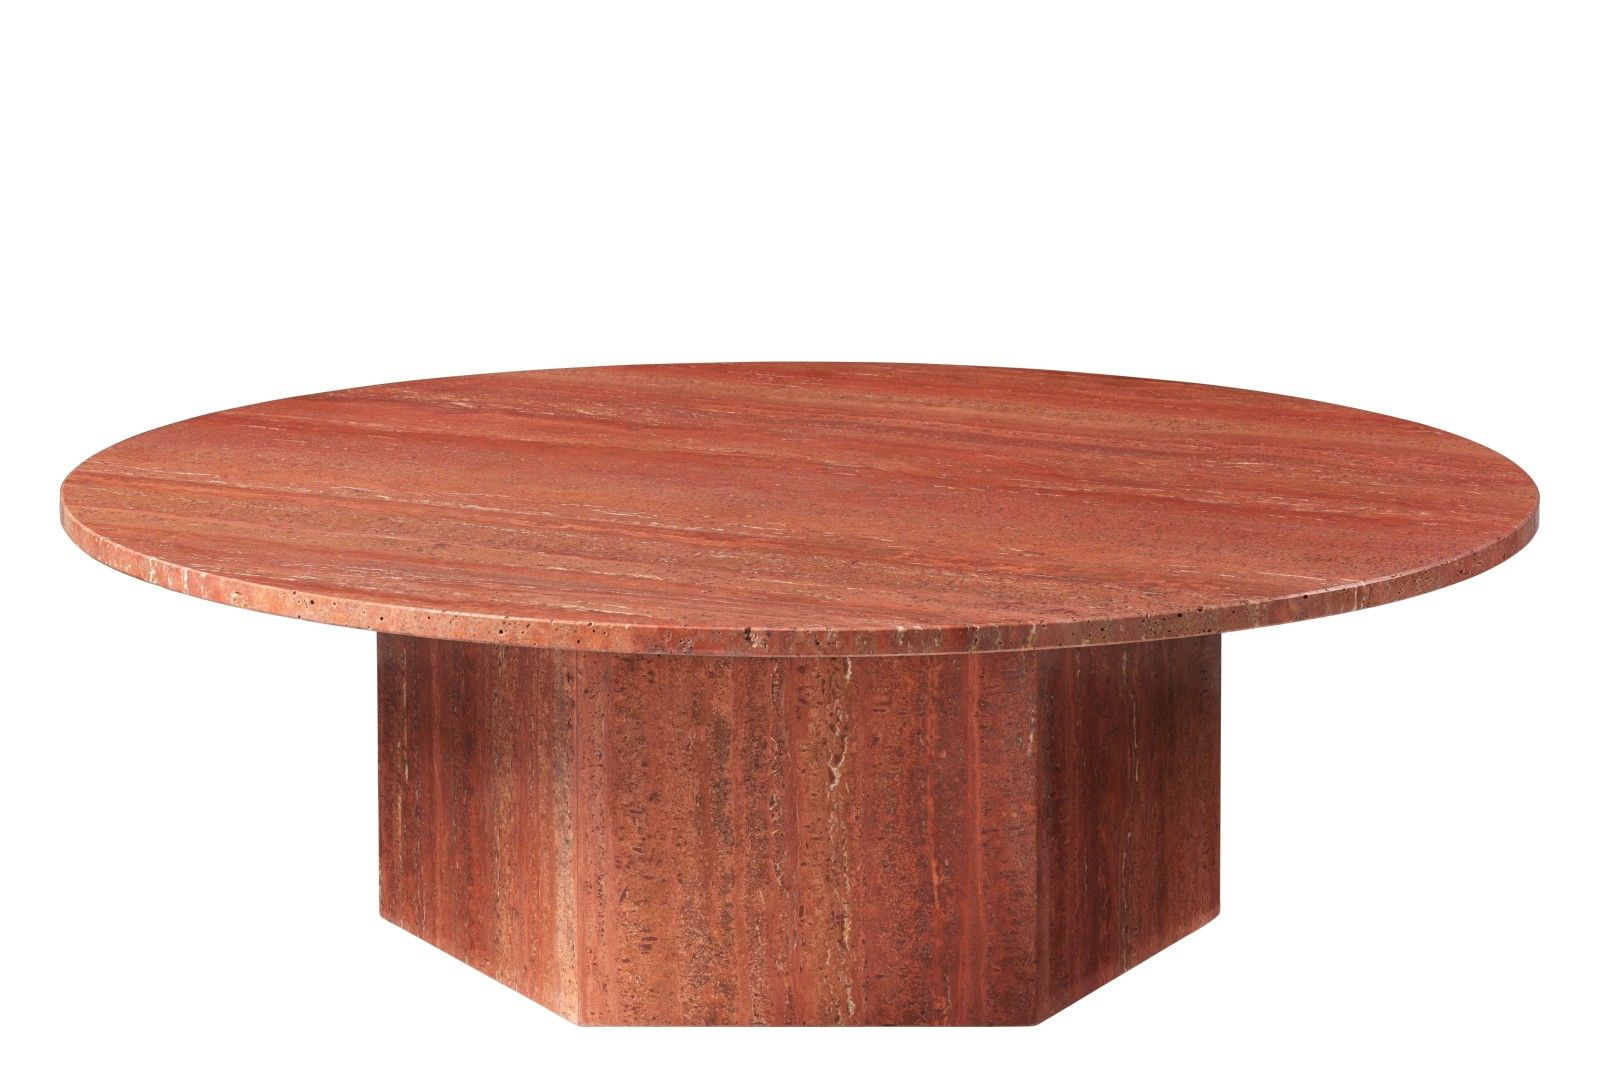 Epic Coffee Table 110 Red Travertine Stone Coffee Table Coffee Table Round Coffee Table [ 1067 x 1600 Pixel ]